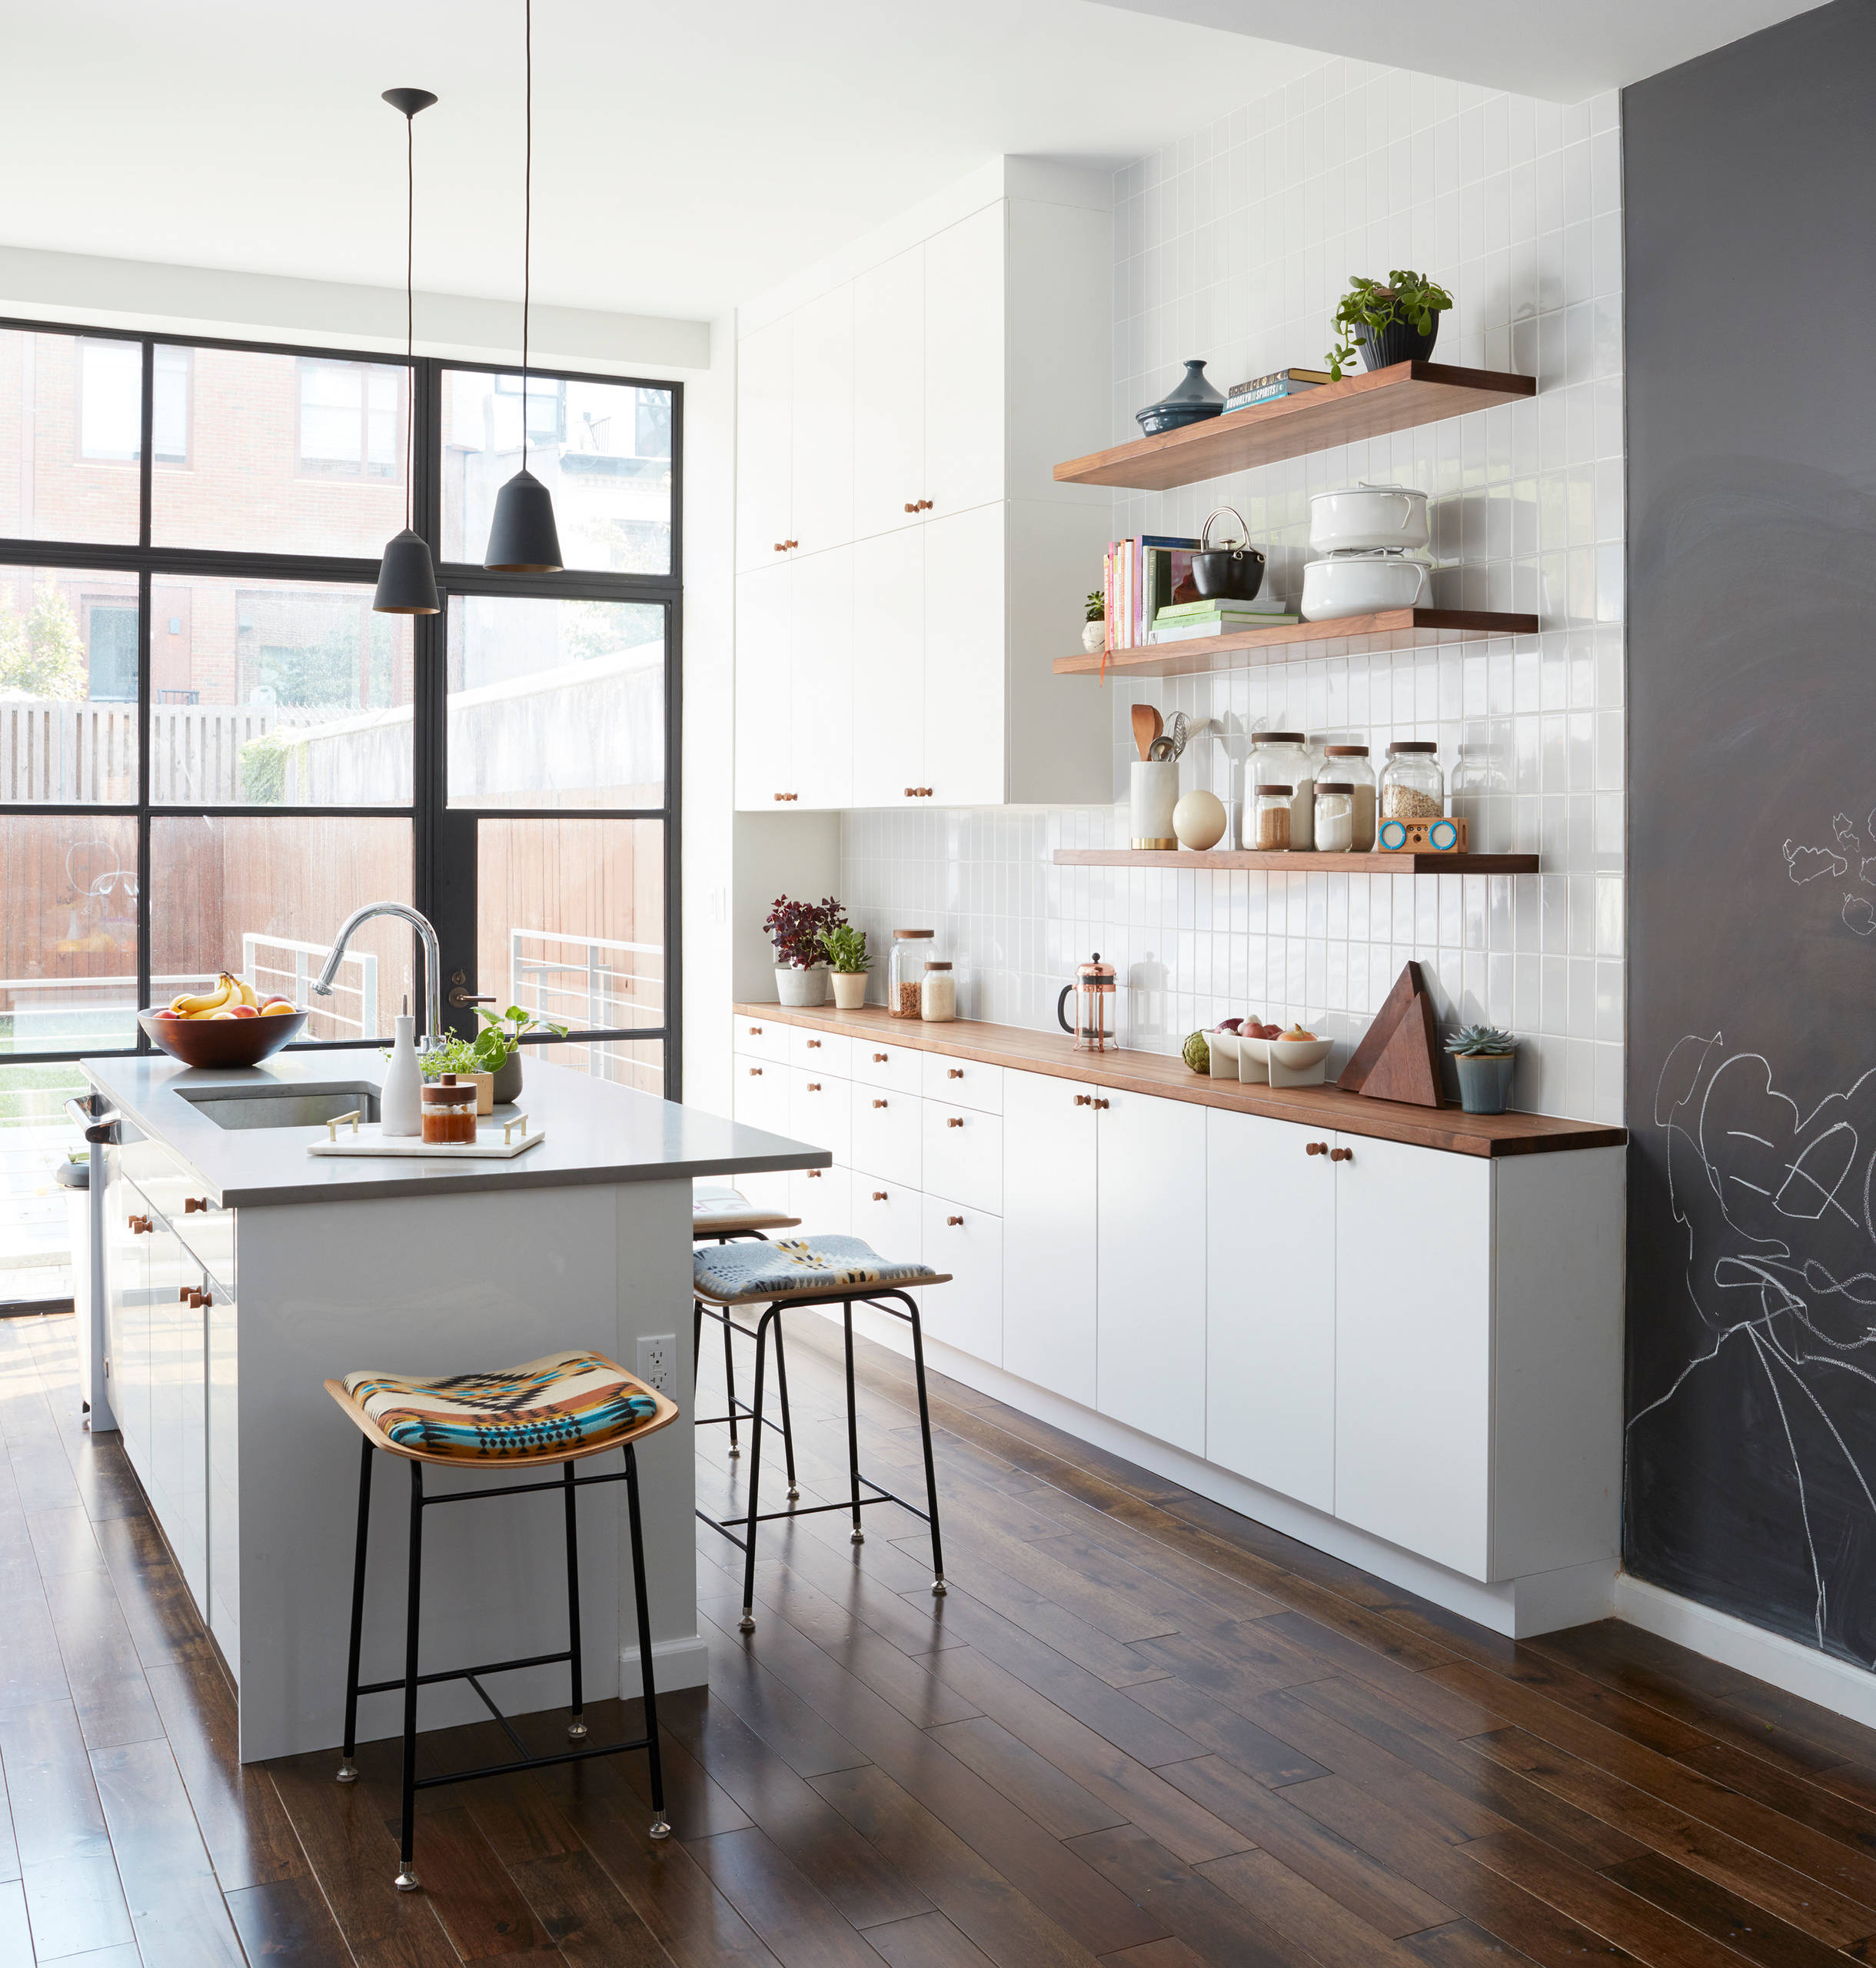 75 Beautiful Kitchen With Wood Countertops Pictures Ideas January 2021 Houzz